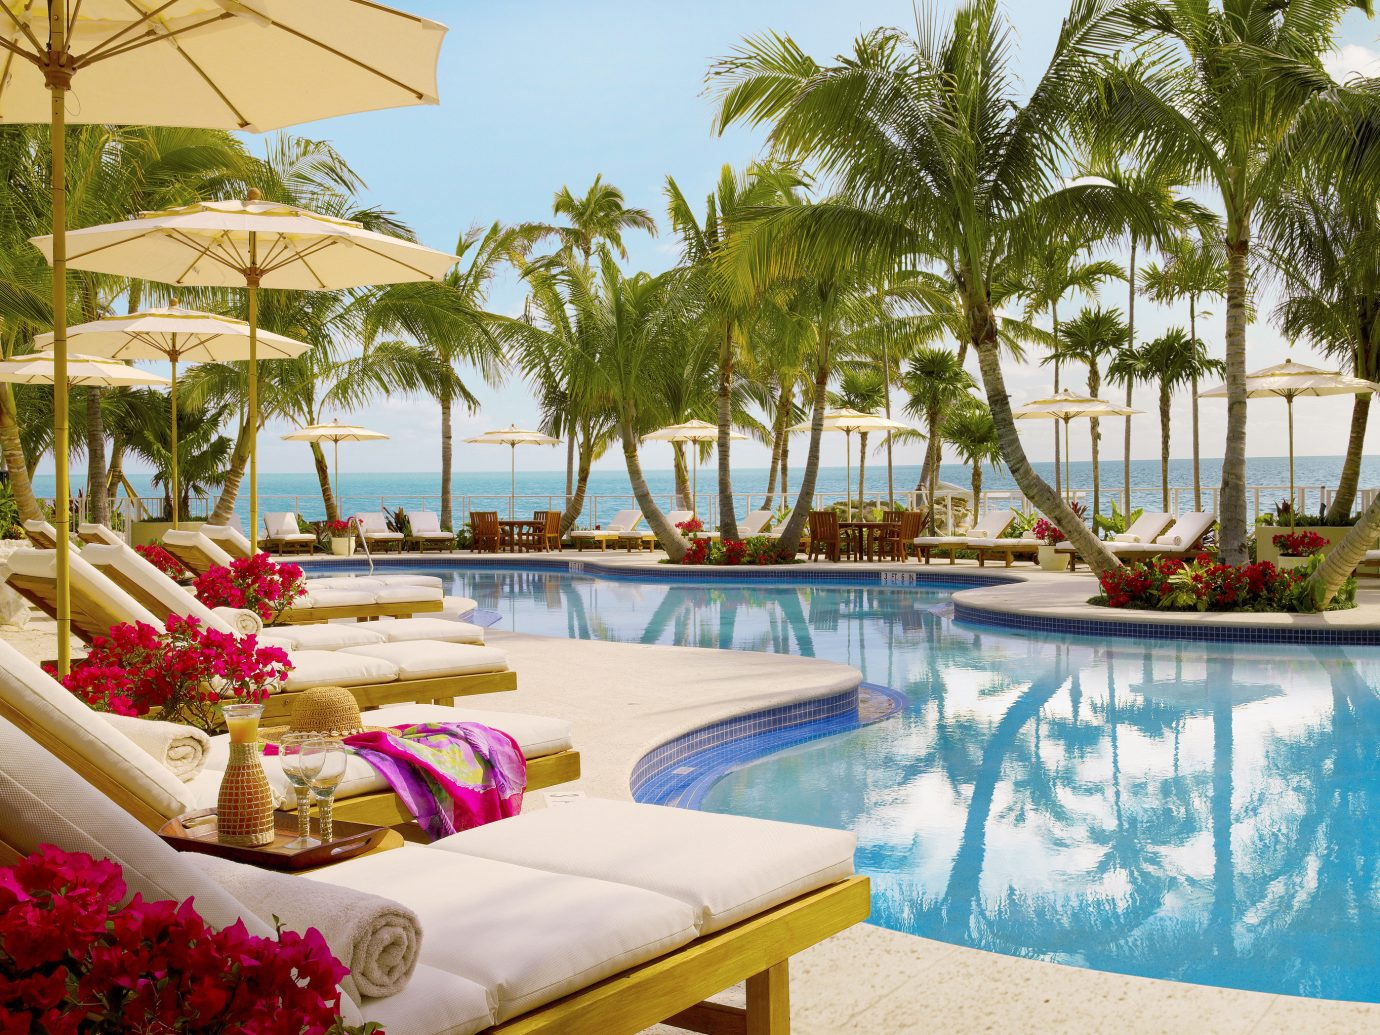 Hotels Romance tree table outdoor Resort property swimming pool leisure vacation caribbean estate flower decorated Villa eco hotel colorful plant palm furniture Garden set